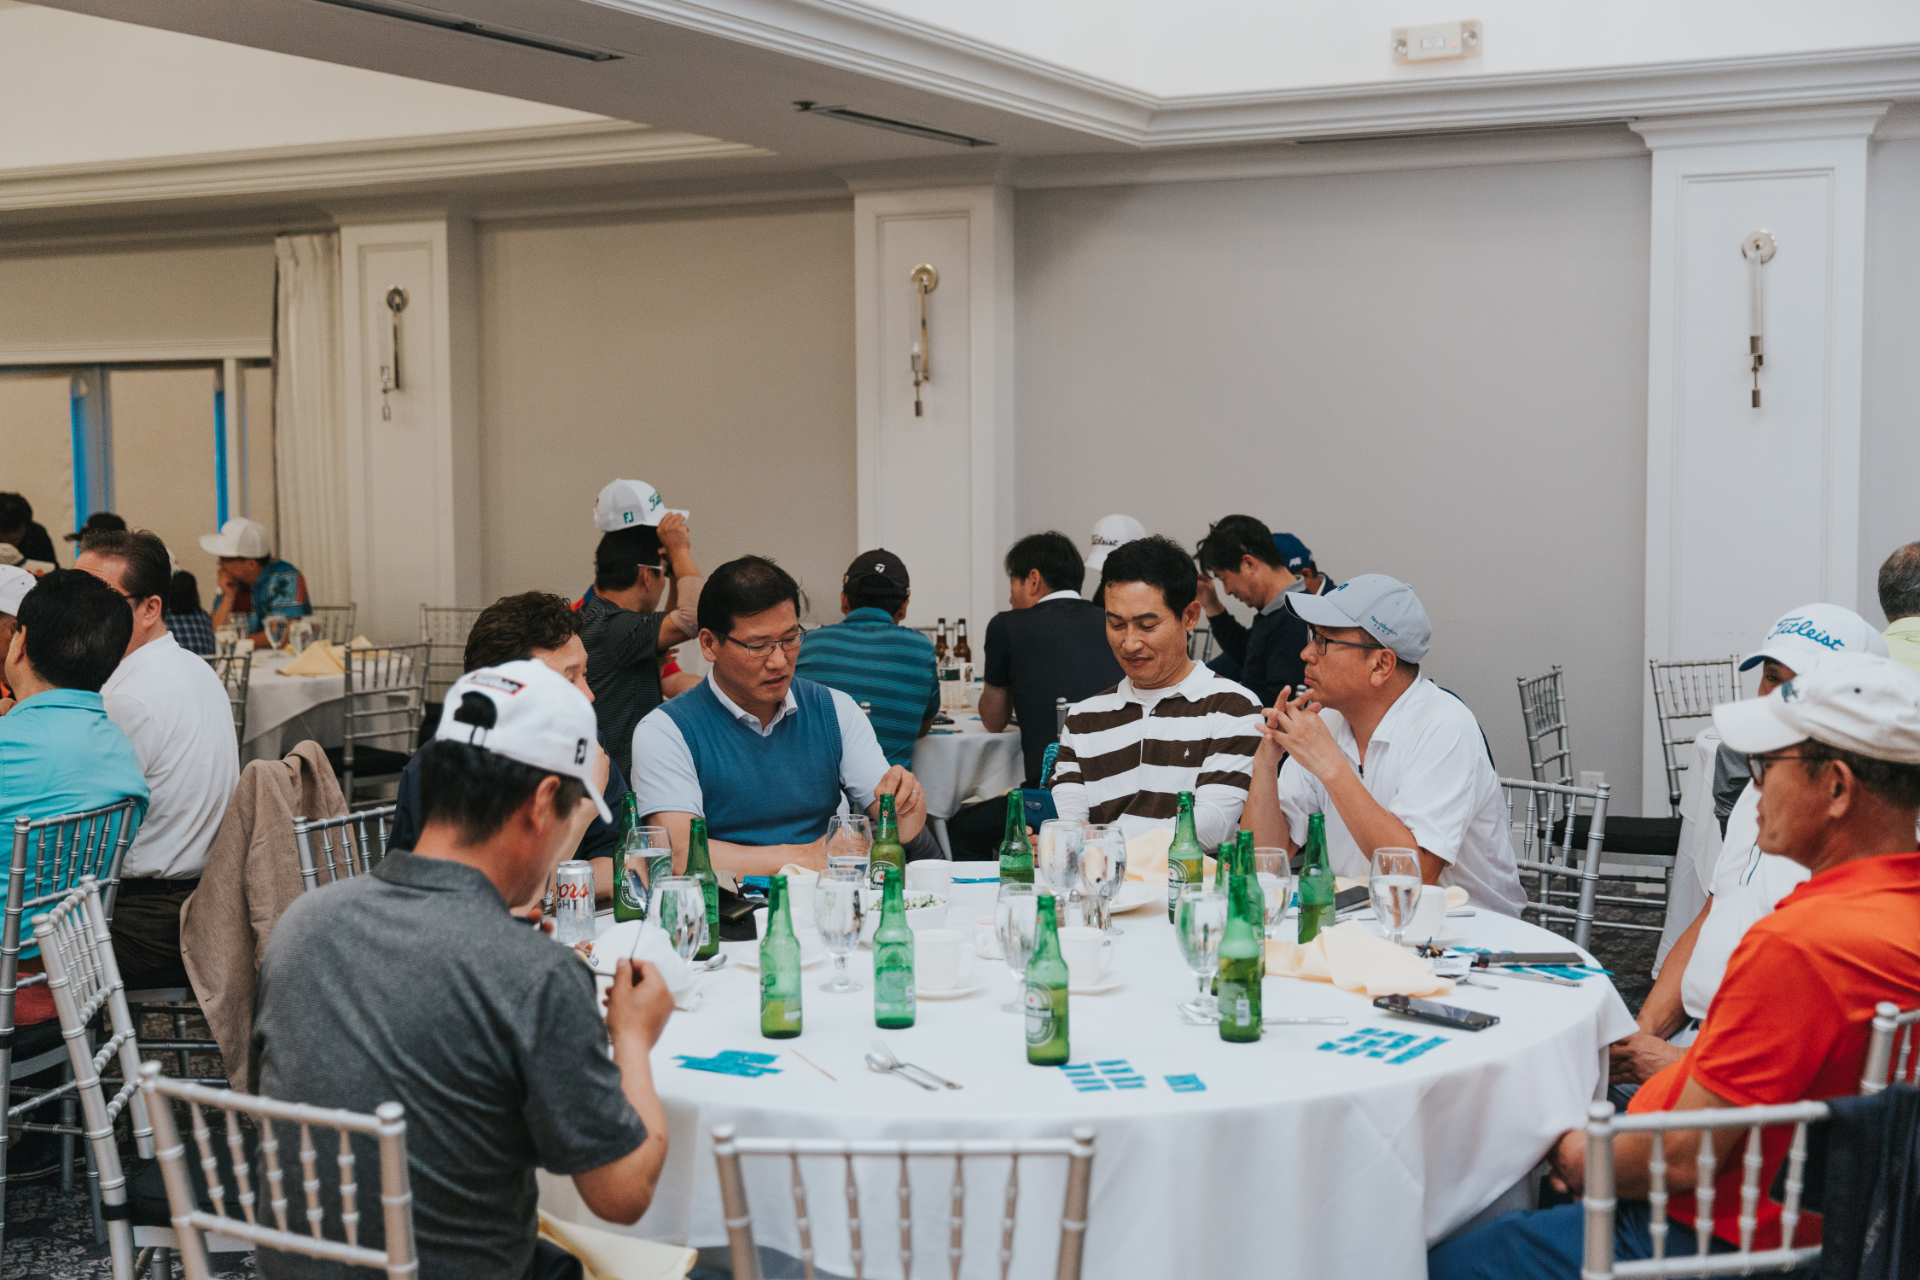 https://nykbi.com/new/wp-content/uploads/2019/07/190619-Scholarship-Fundraising-Golf-Tournament-034.jpg